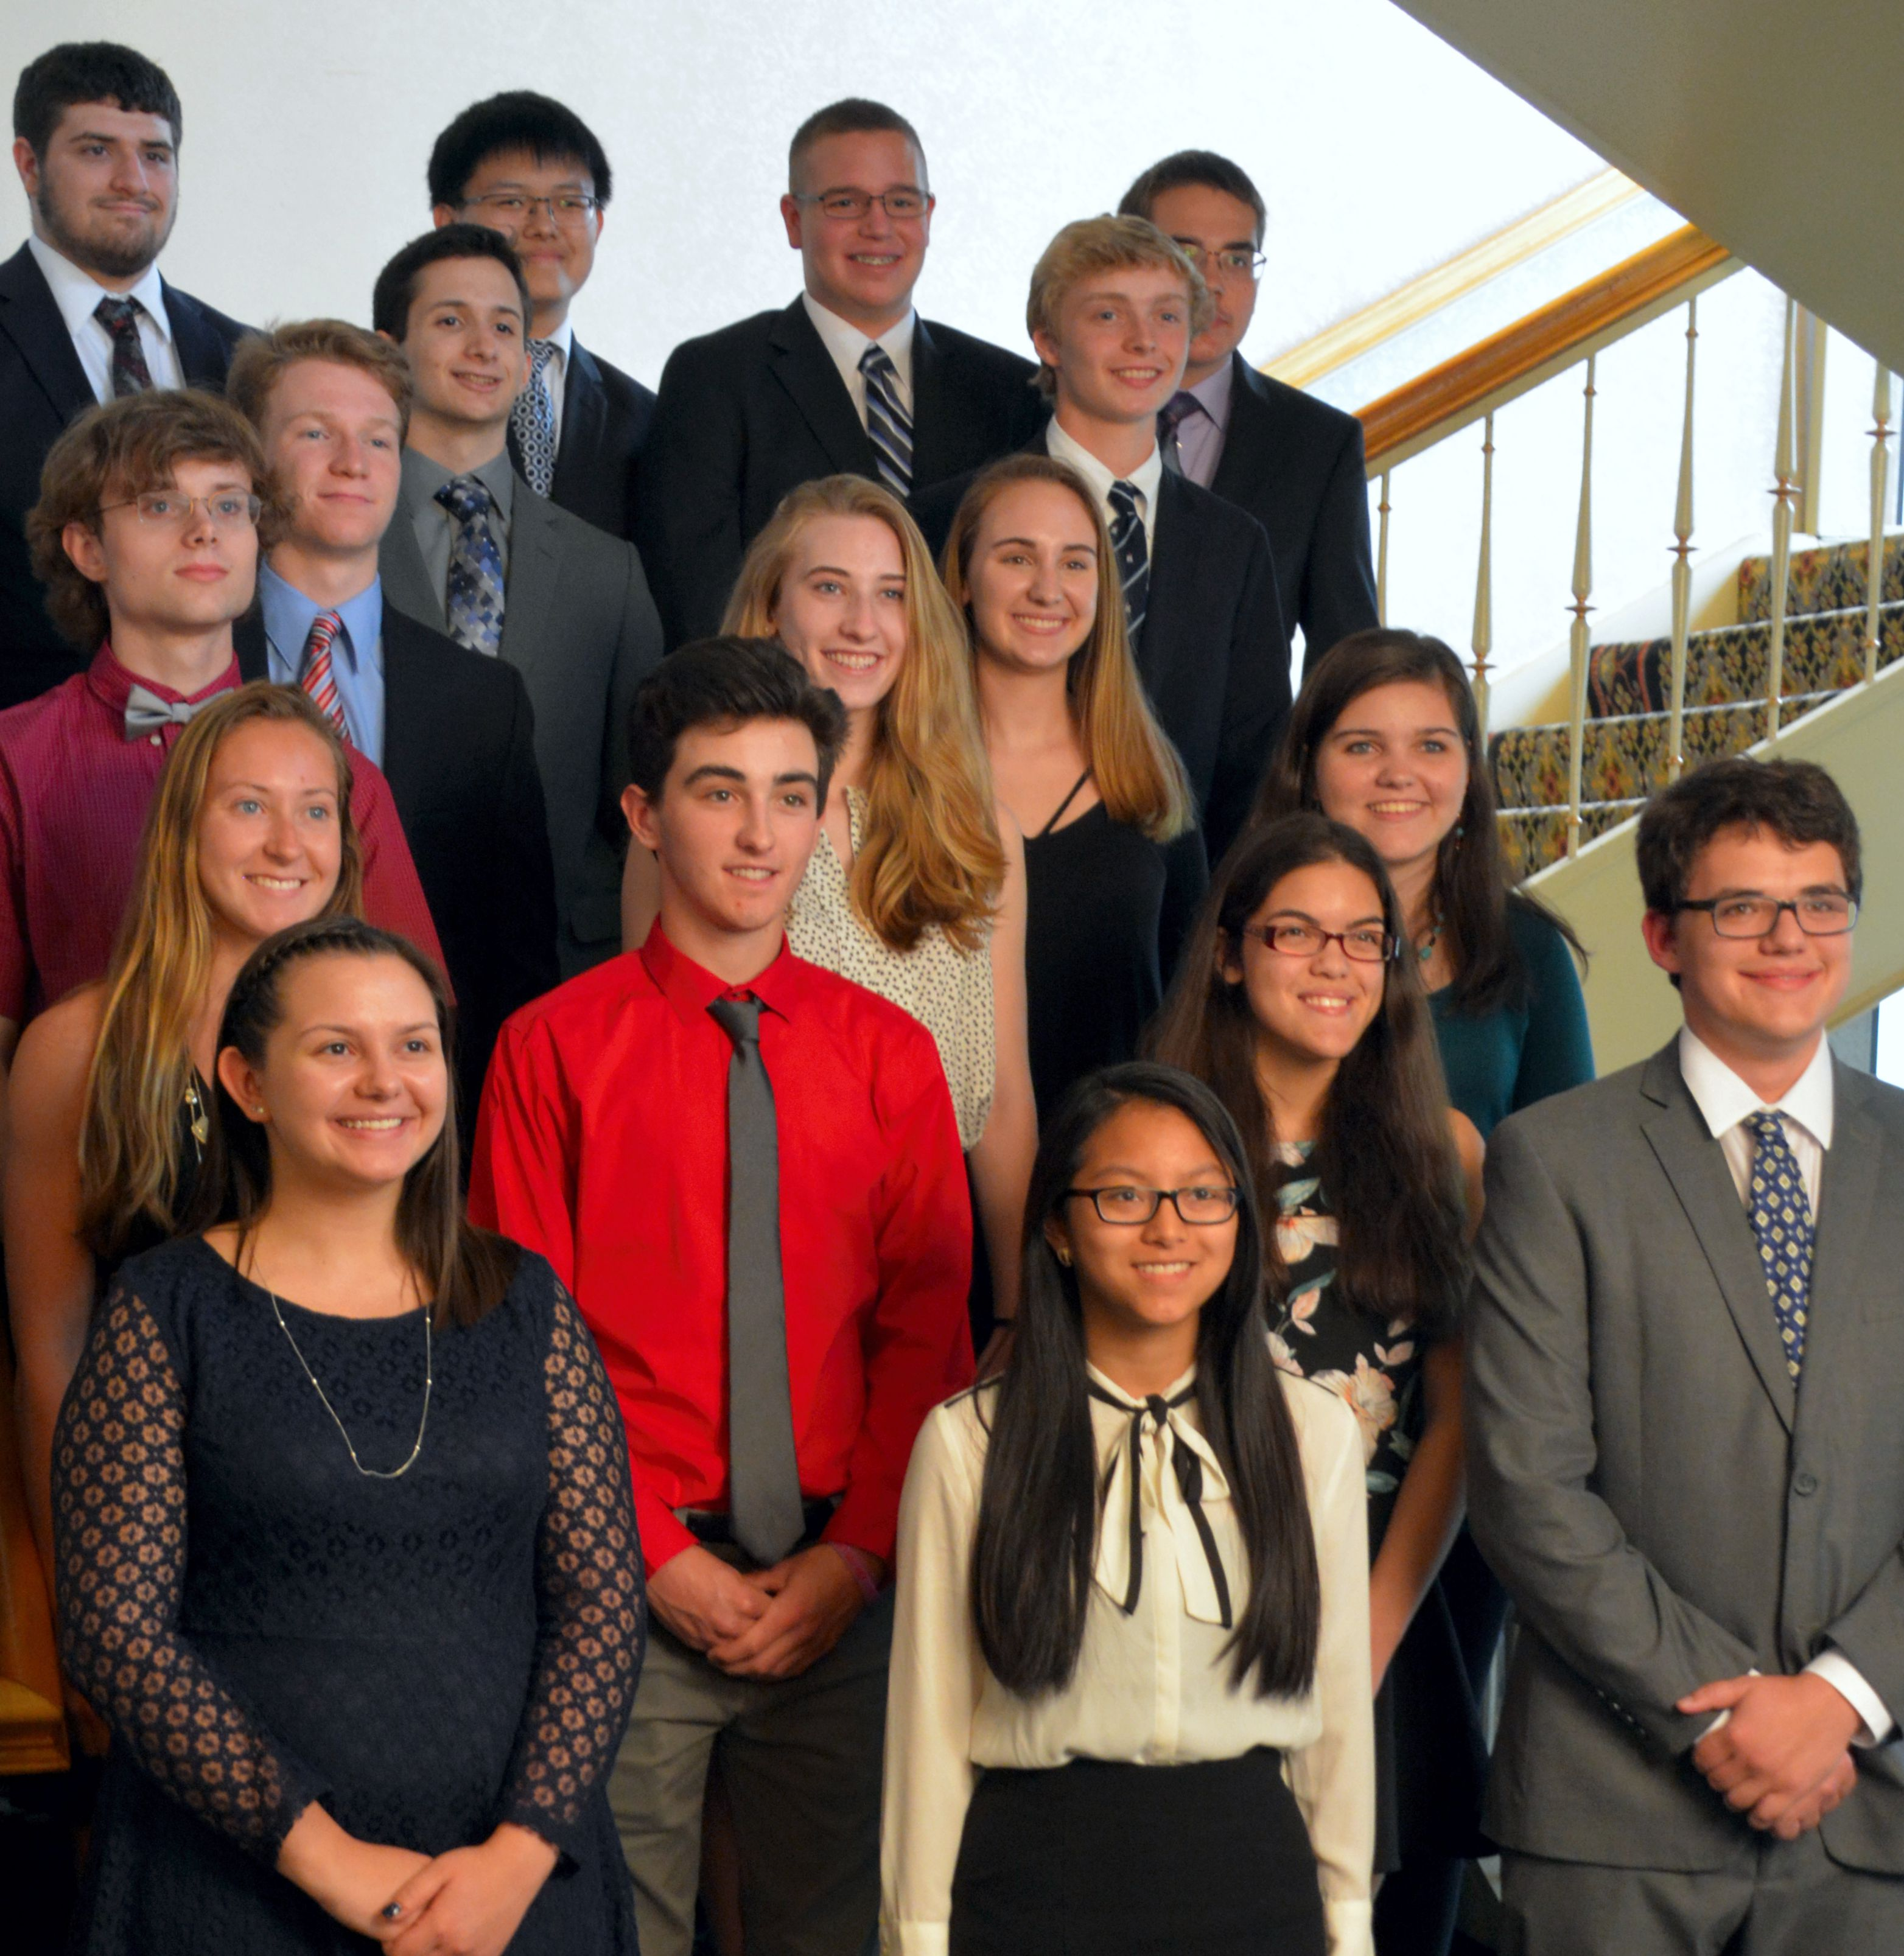 High school recipients of chapter scholarships attend the awards night in May and network with members.